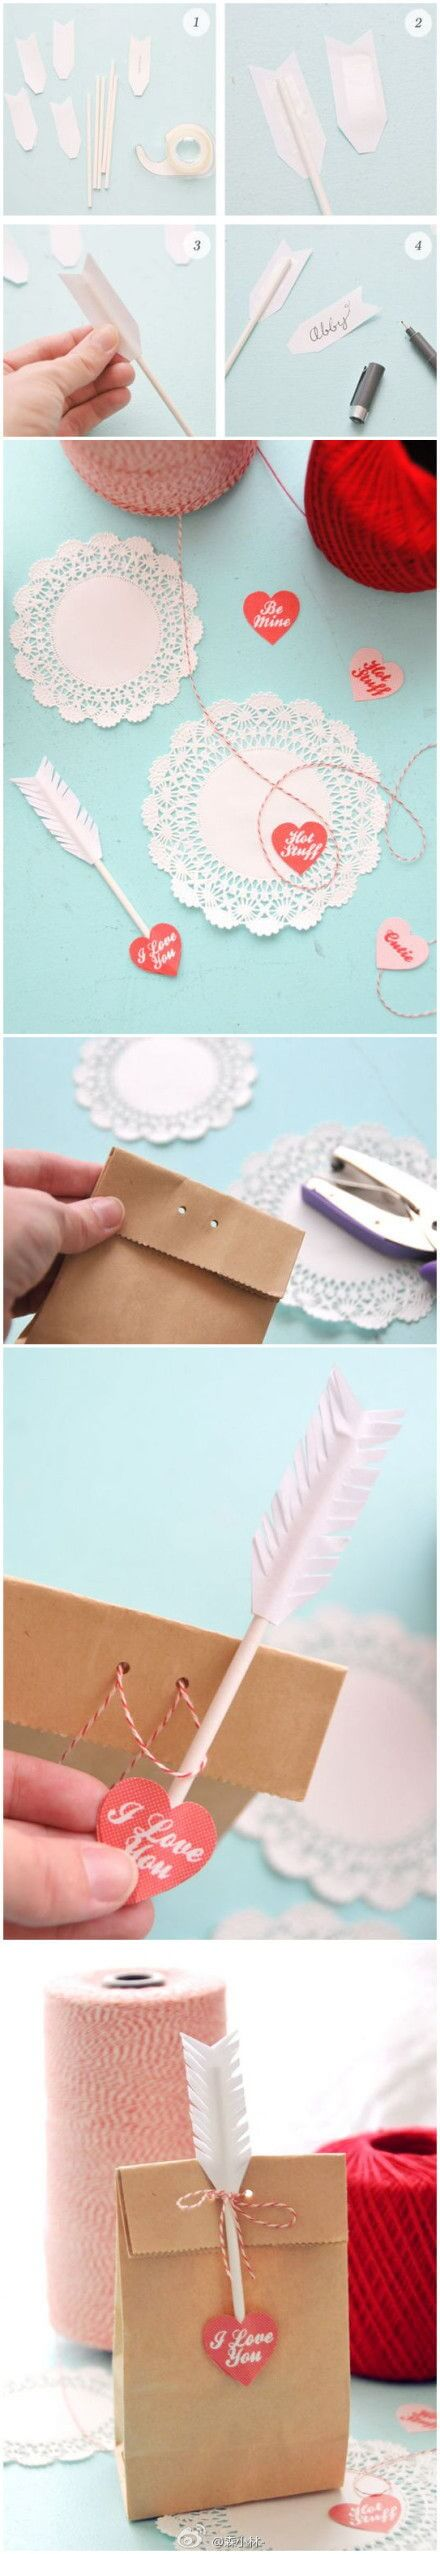 diy-small-love-packaging DIY Small Love Packaging tutorial Genius Tricks for Gift Wrapping - Step by step Ideas